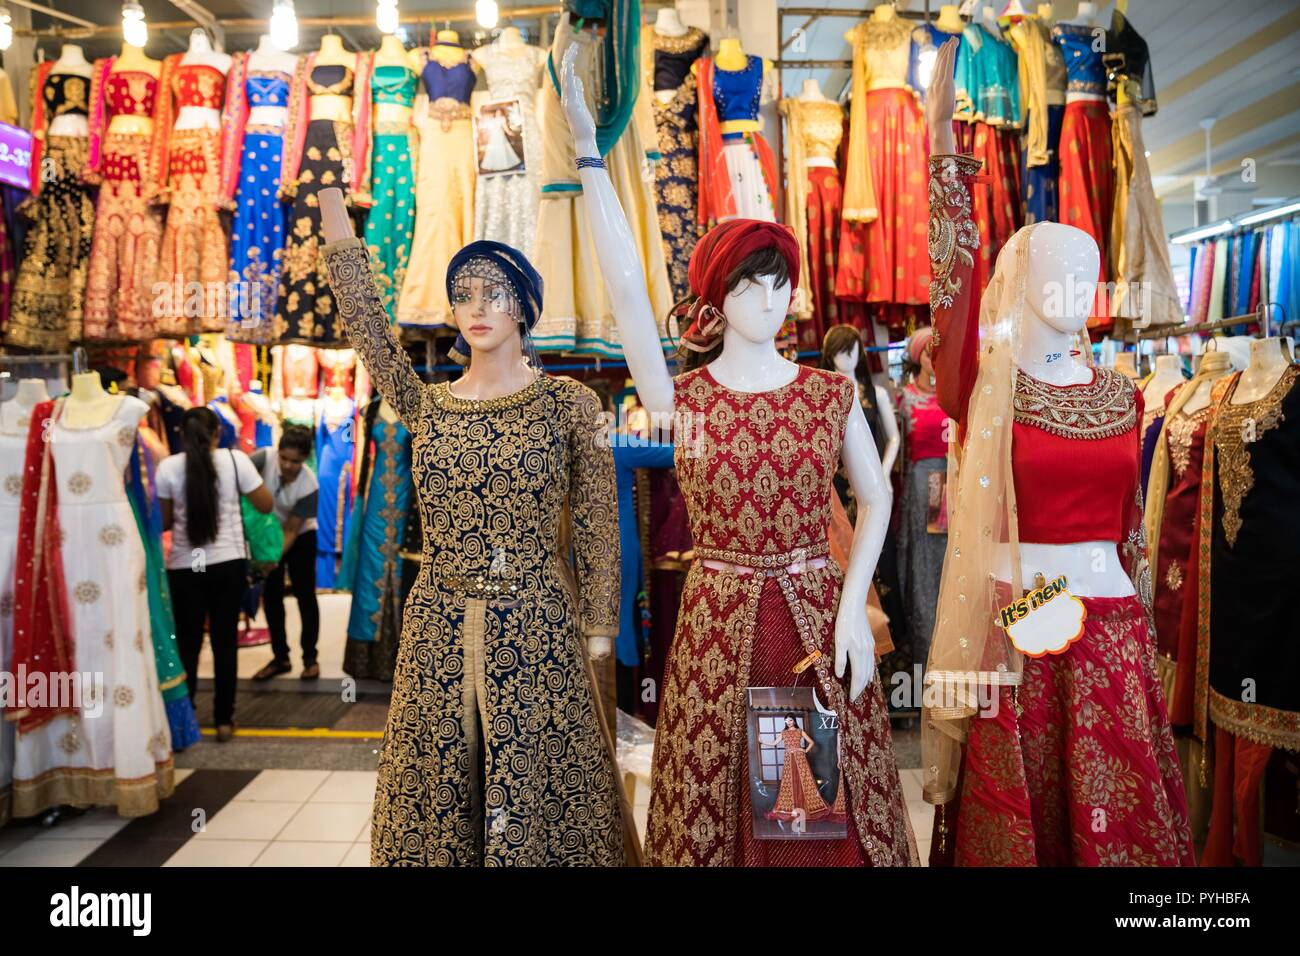 9d6c62b67d Indian traditional clothings seen dressed on mannequins in a clothing store  in Little India in Singapore